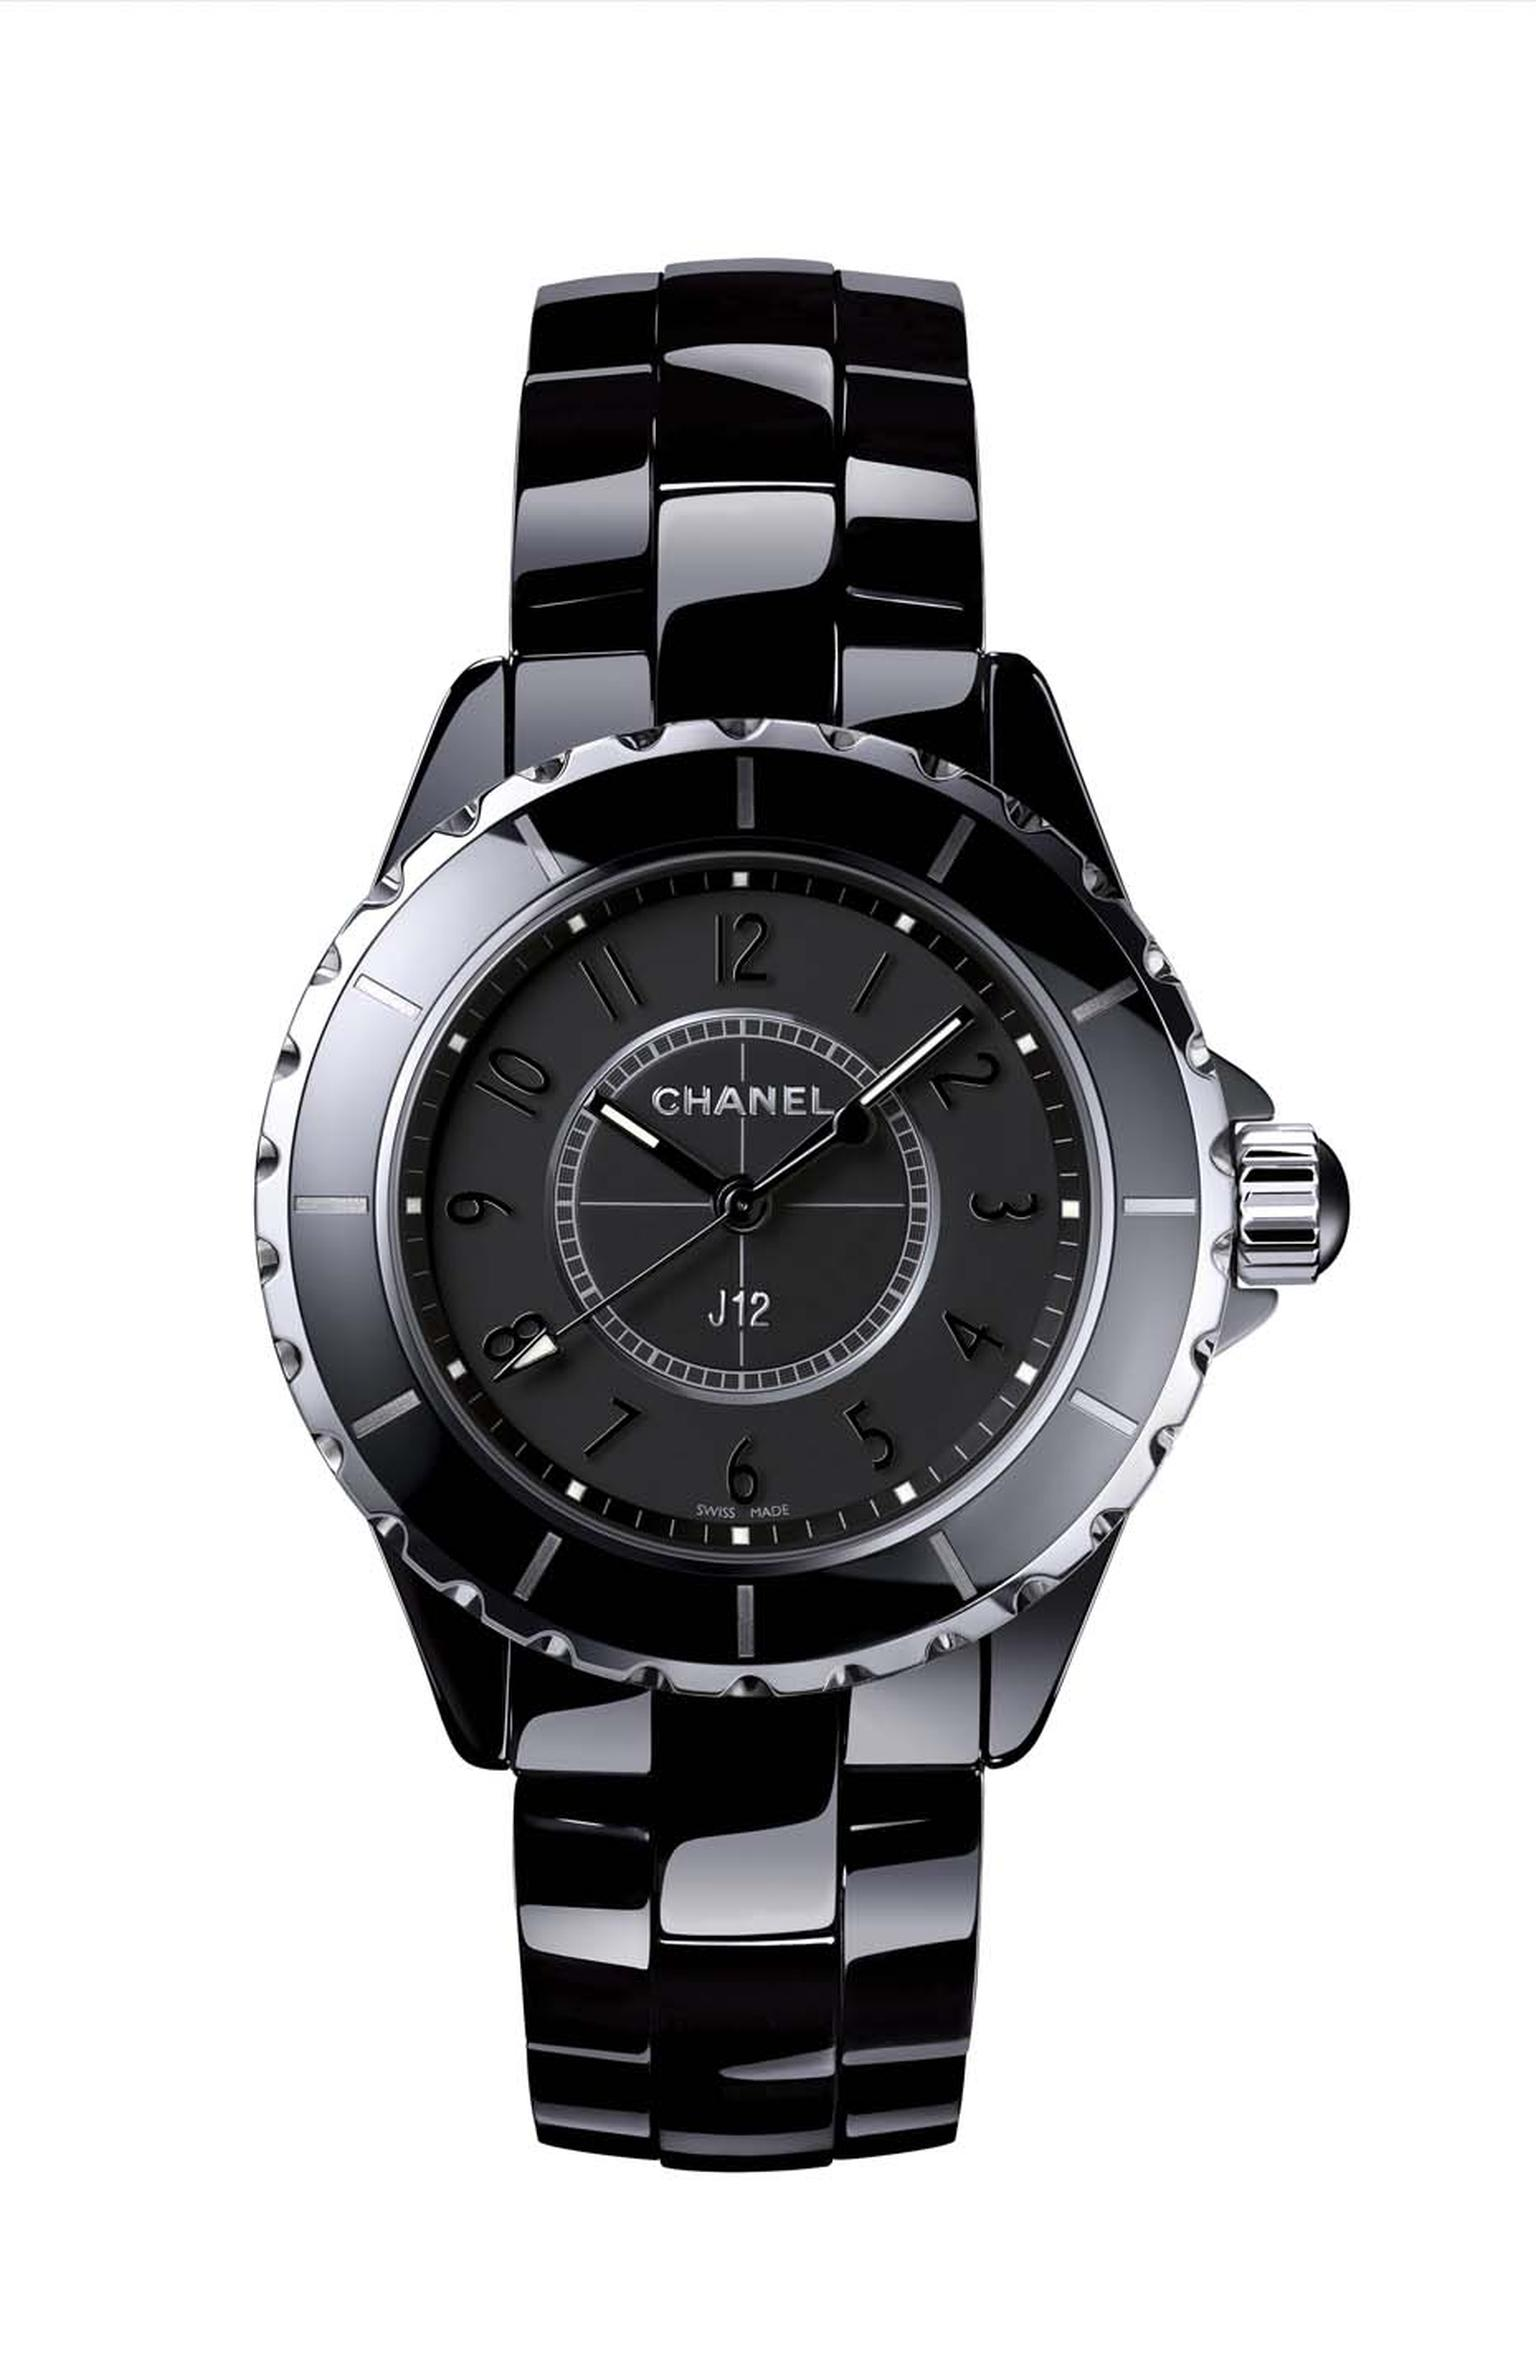 Chanel's J12 Intense Black watch in high-tech black ceramic is fitted with a high-precision quartz movement